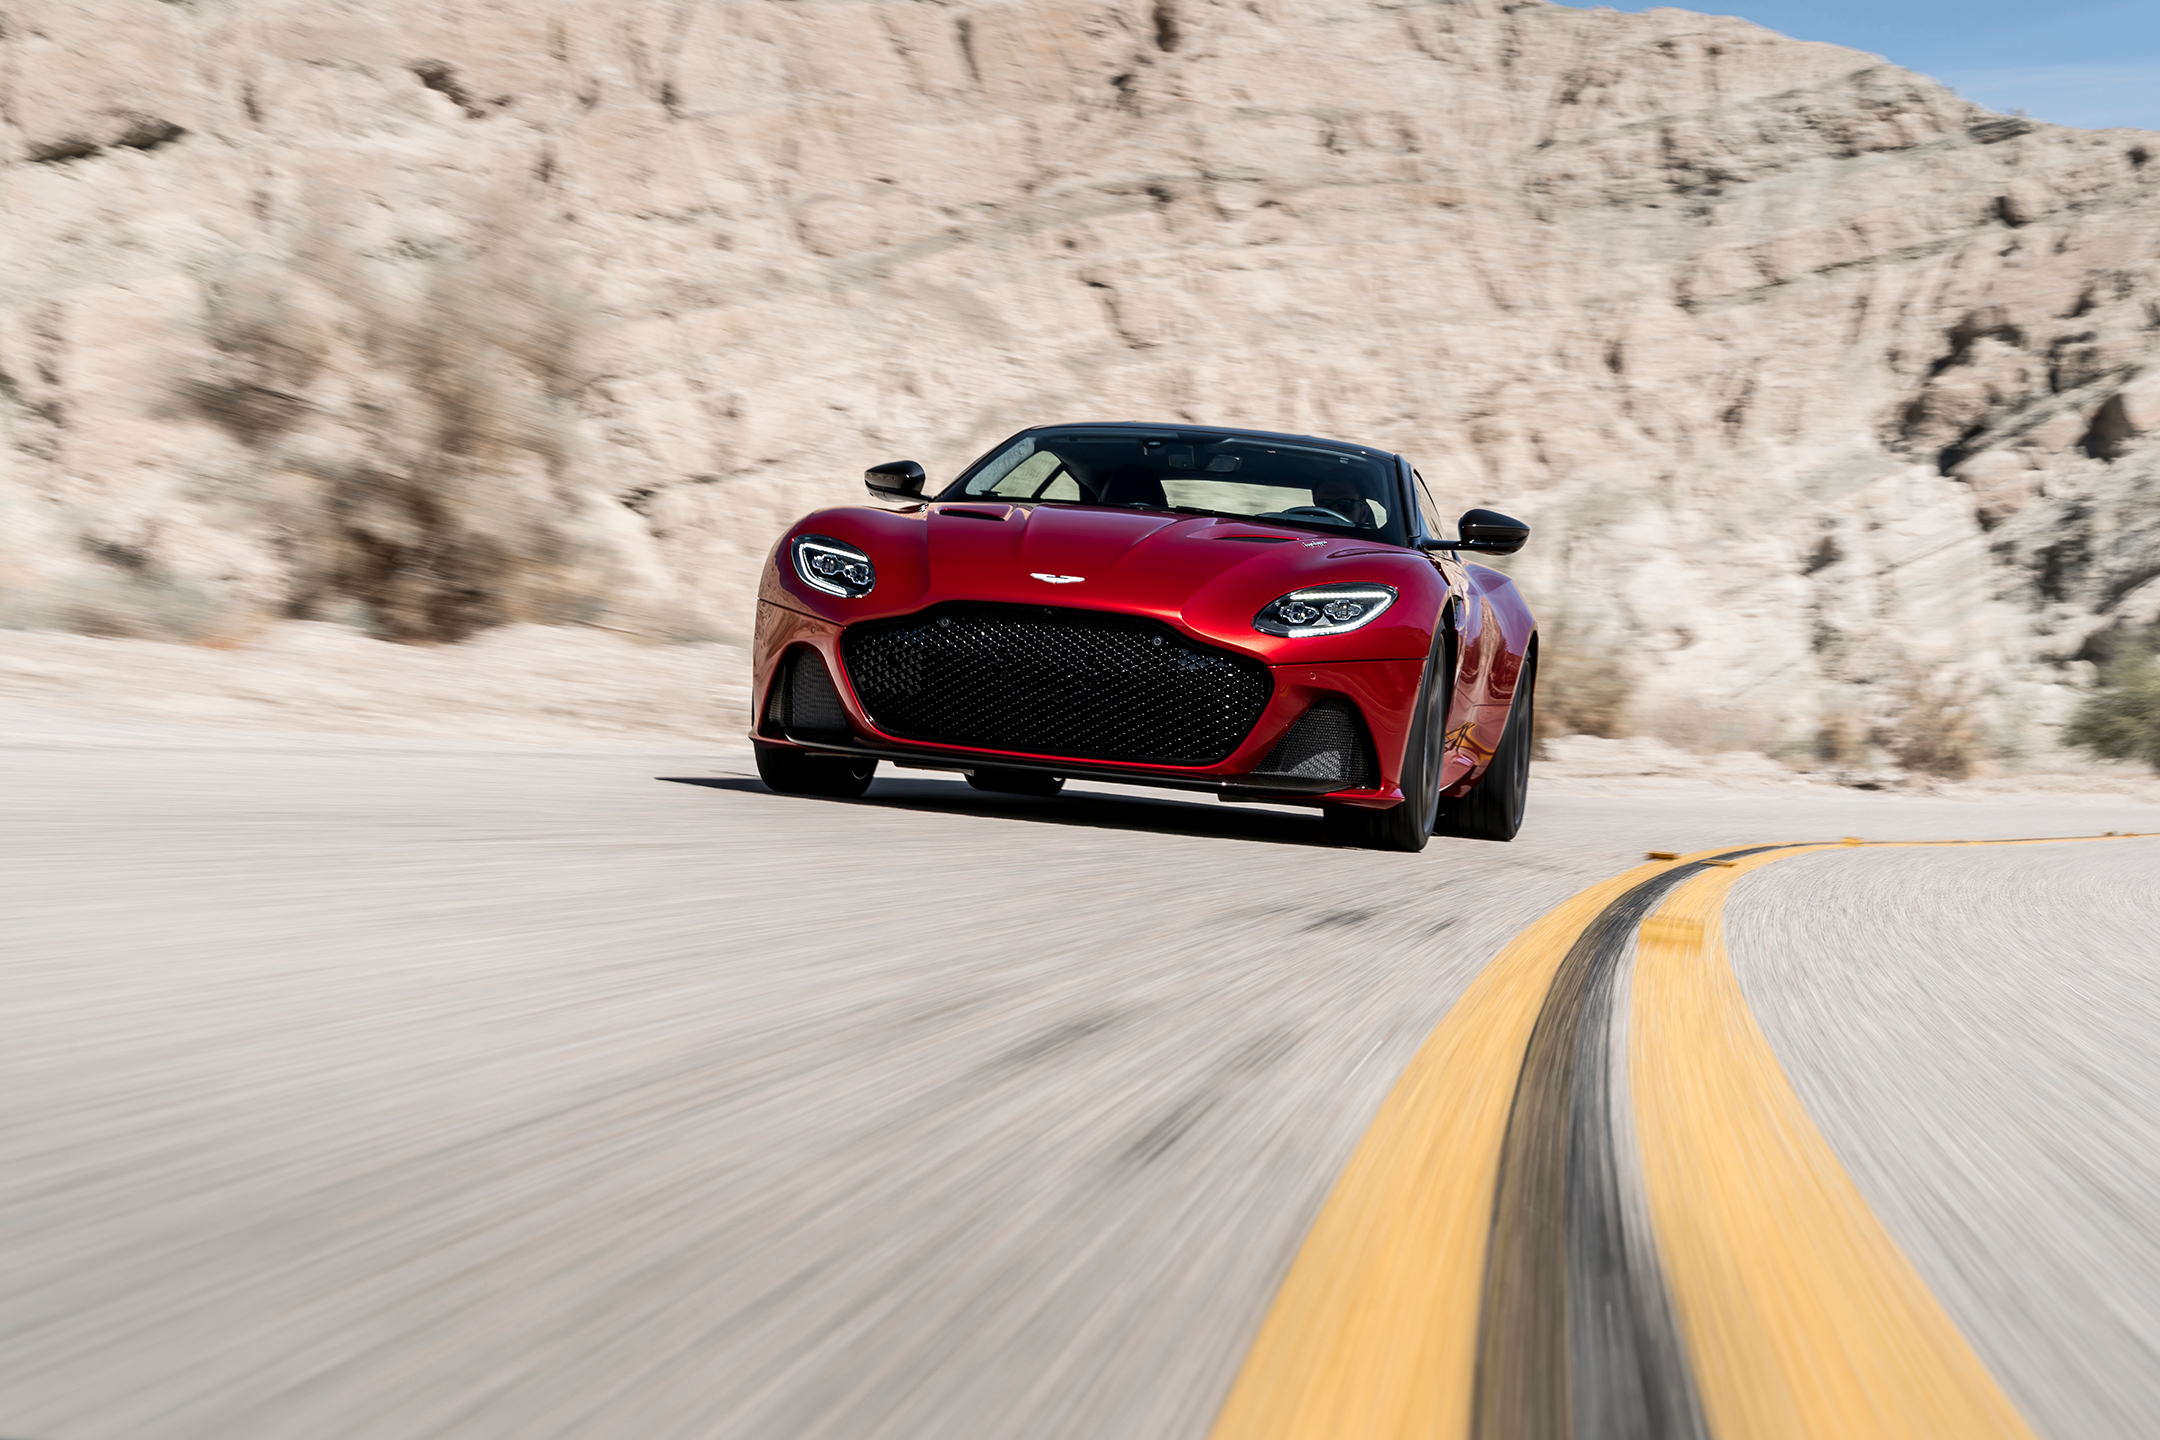 Aston Martin DBS Superleggera - 2018 - front road